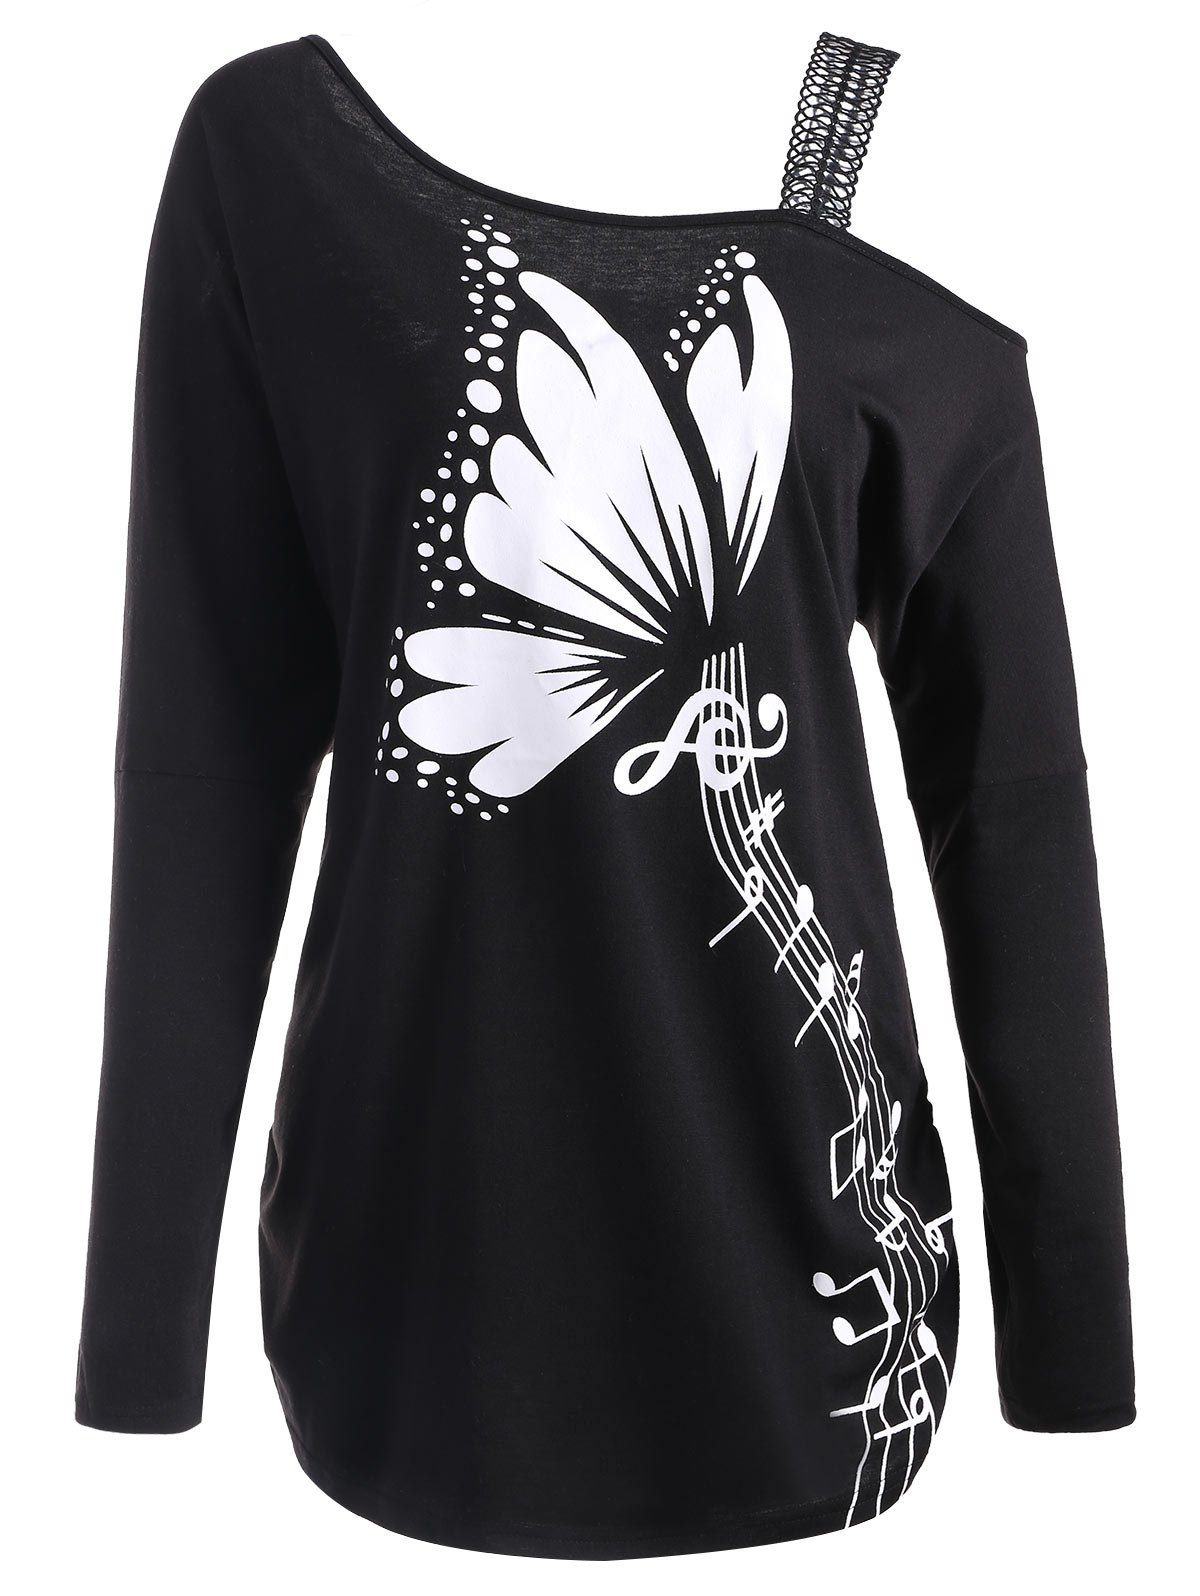 Hot Butterfly Musical Notes Print Plus Size T-shirt